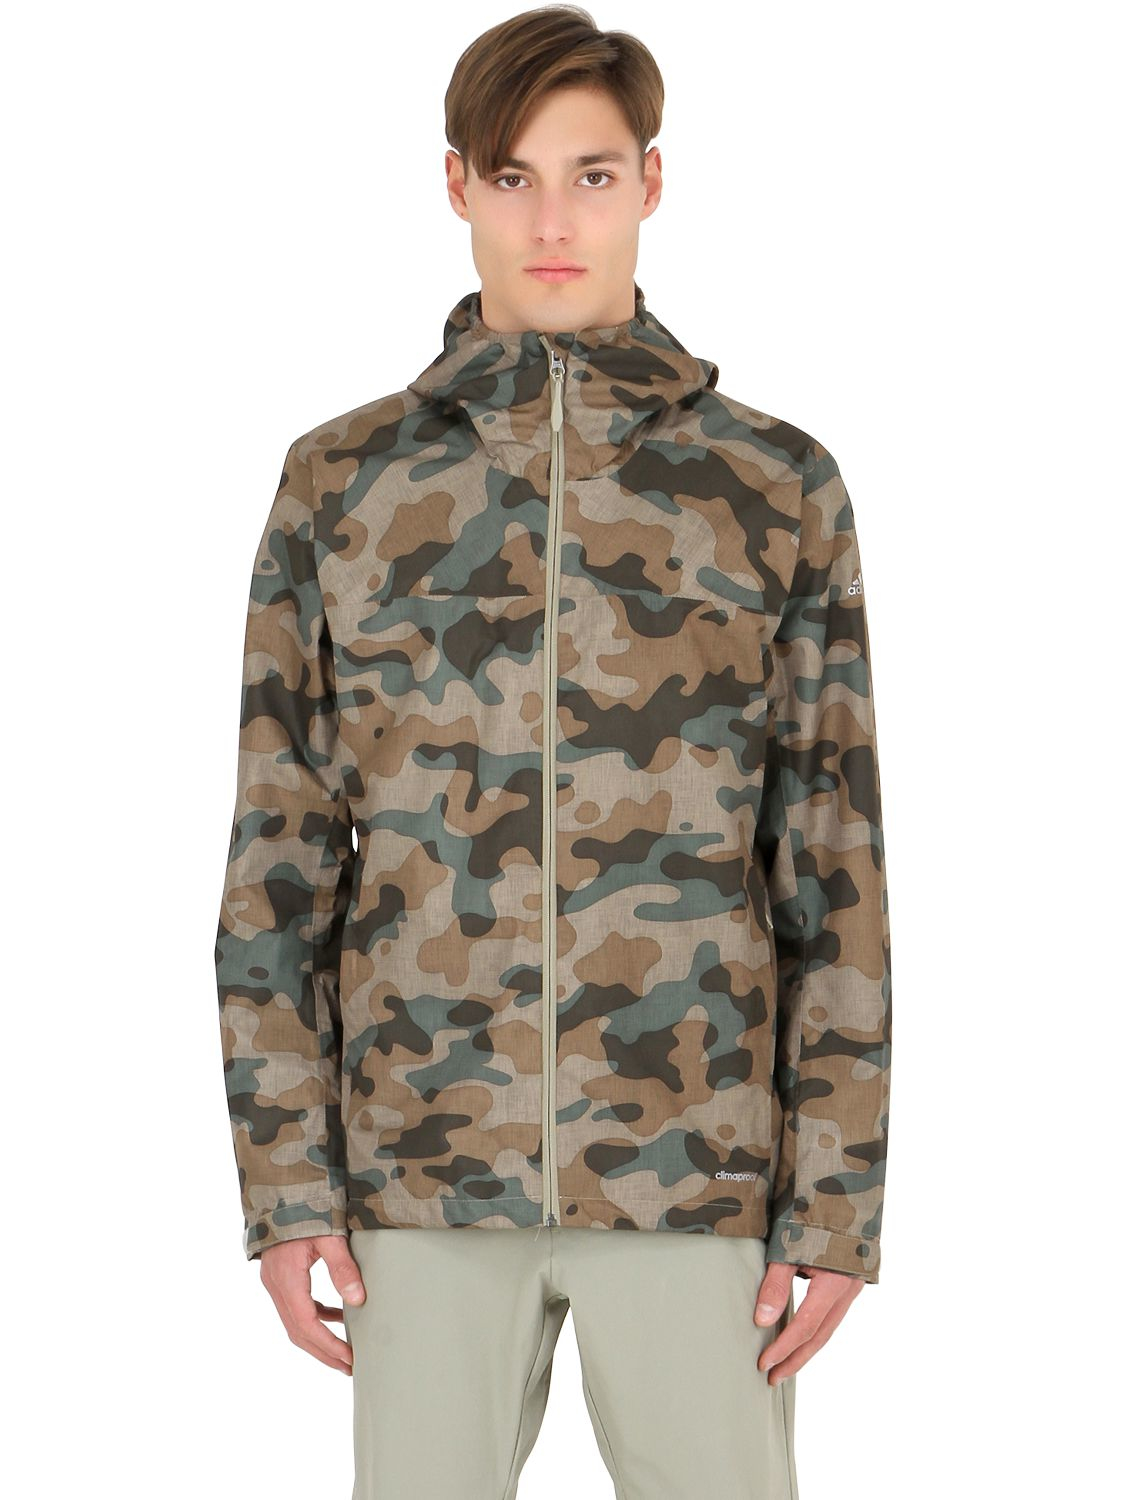 adidas jacket camo jeremy scott ruffle camo jacket adidas training jackets. Black Bedroom Furniture Sets. Home Design Ideas